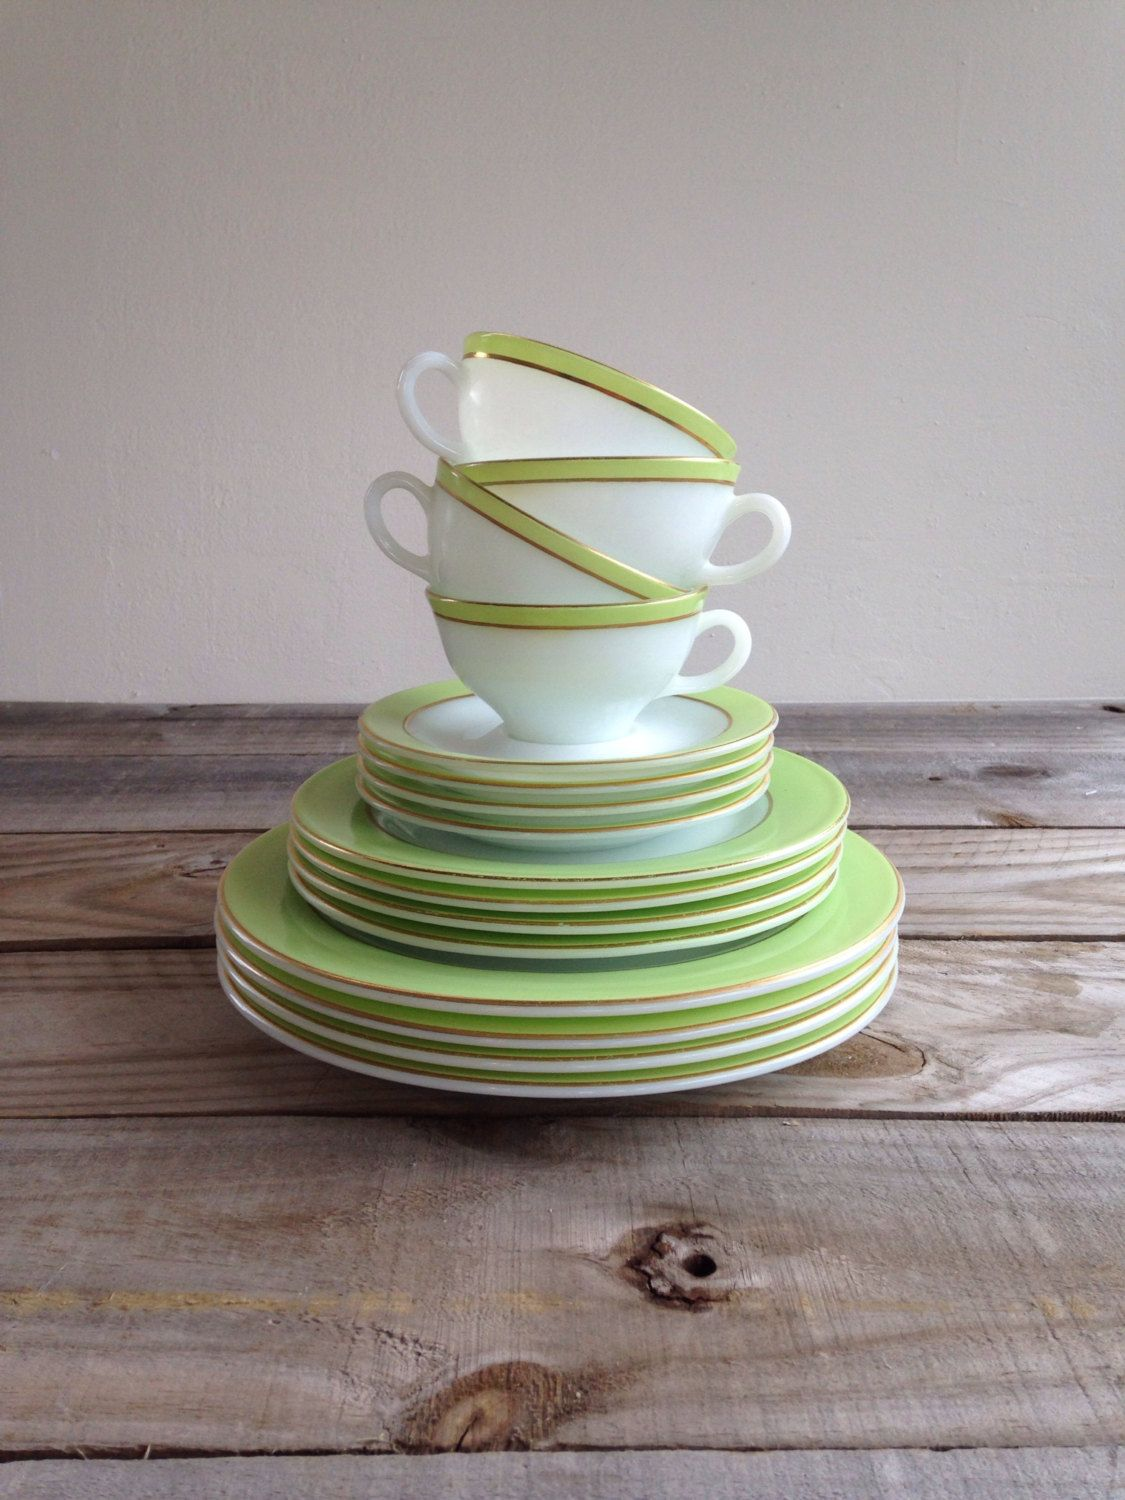 Vintage Pyrex Dishes 4 Place settings Dinner Lunch Saucer and Cup Lime Green Dinnerware Pyrex White and Gold Matching Pyrex by webecharmed on Etsy : lime green dinnerware - pezcame.com